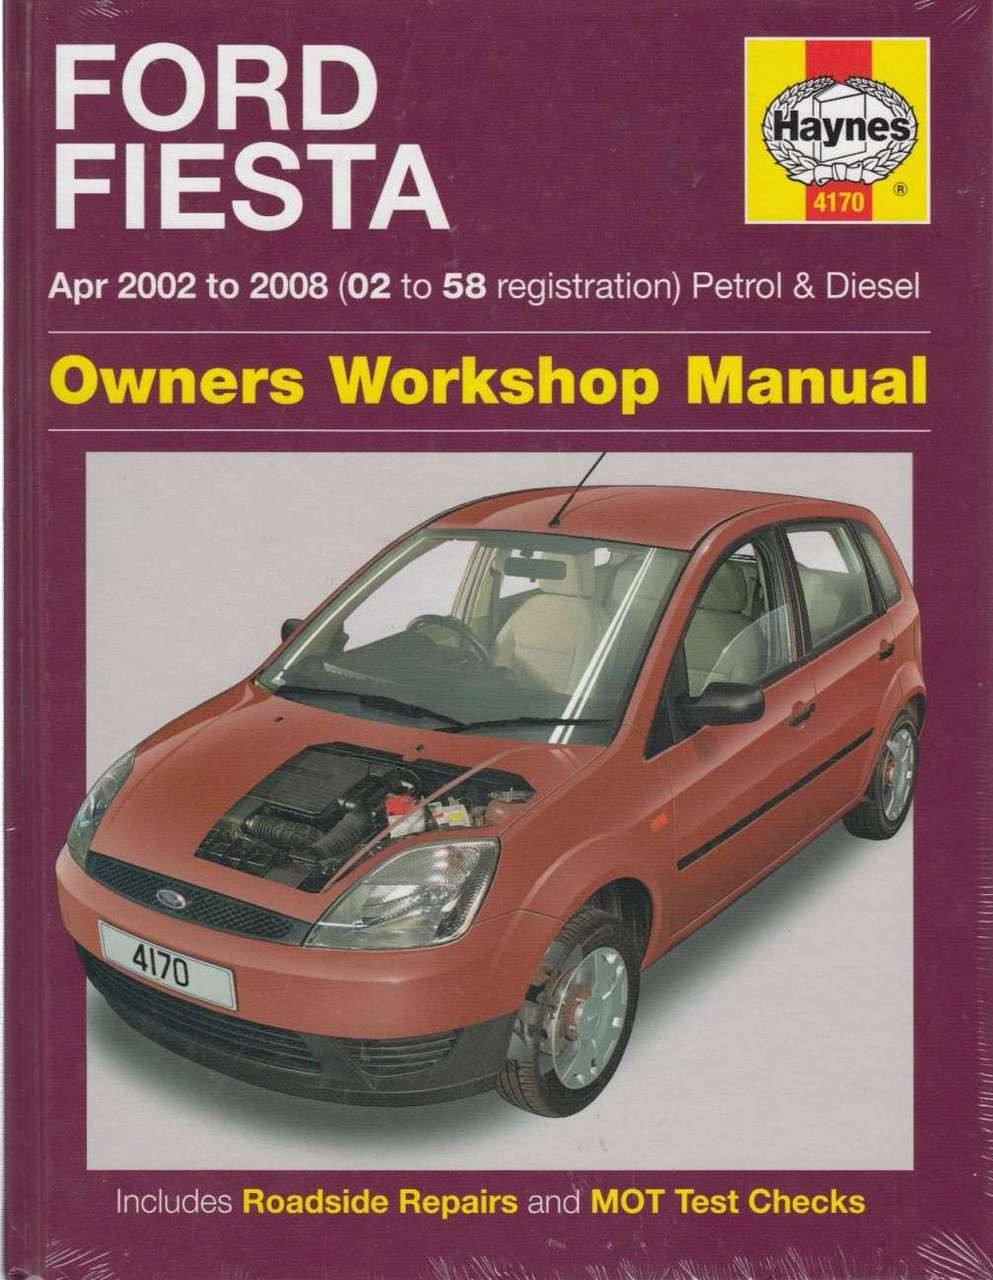 ford fiesta petrol diesel 2002 2008 workshop manual rh automotobookshop com au 2005 Ford Focus Manual Transmission 2005 Ford Focus Manual PDF